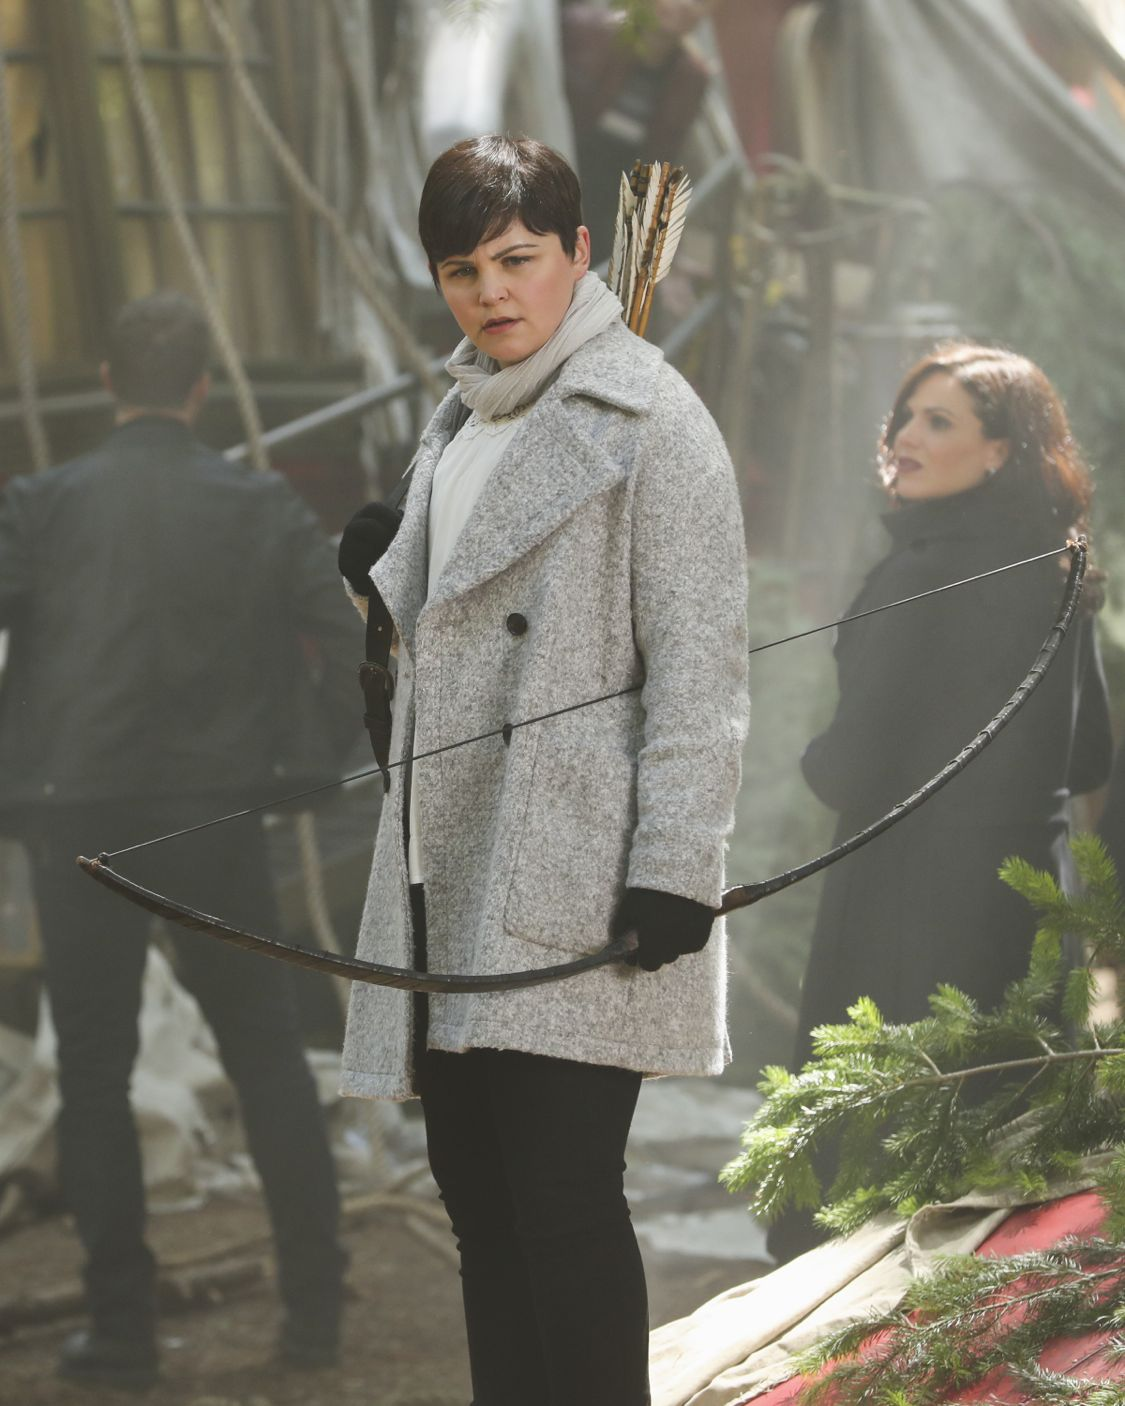 """ONCE UPON A TIME - """"The Savior"""" - As """"Once Upon a Time"""" returns to ABC for its sixth season, SUNDAY, SEPTEMBER 25 (8:00-9:00 p.m. EDT), on the ABC Television Network, so does its classic villain-the Evil Queen. (ABC/Jack Rowand) GINNIFER GOODWIN"""